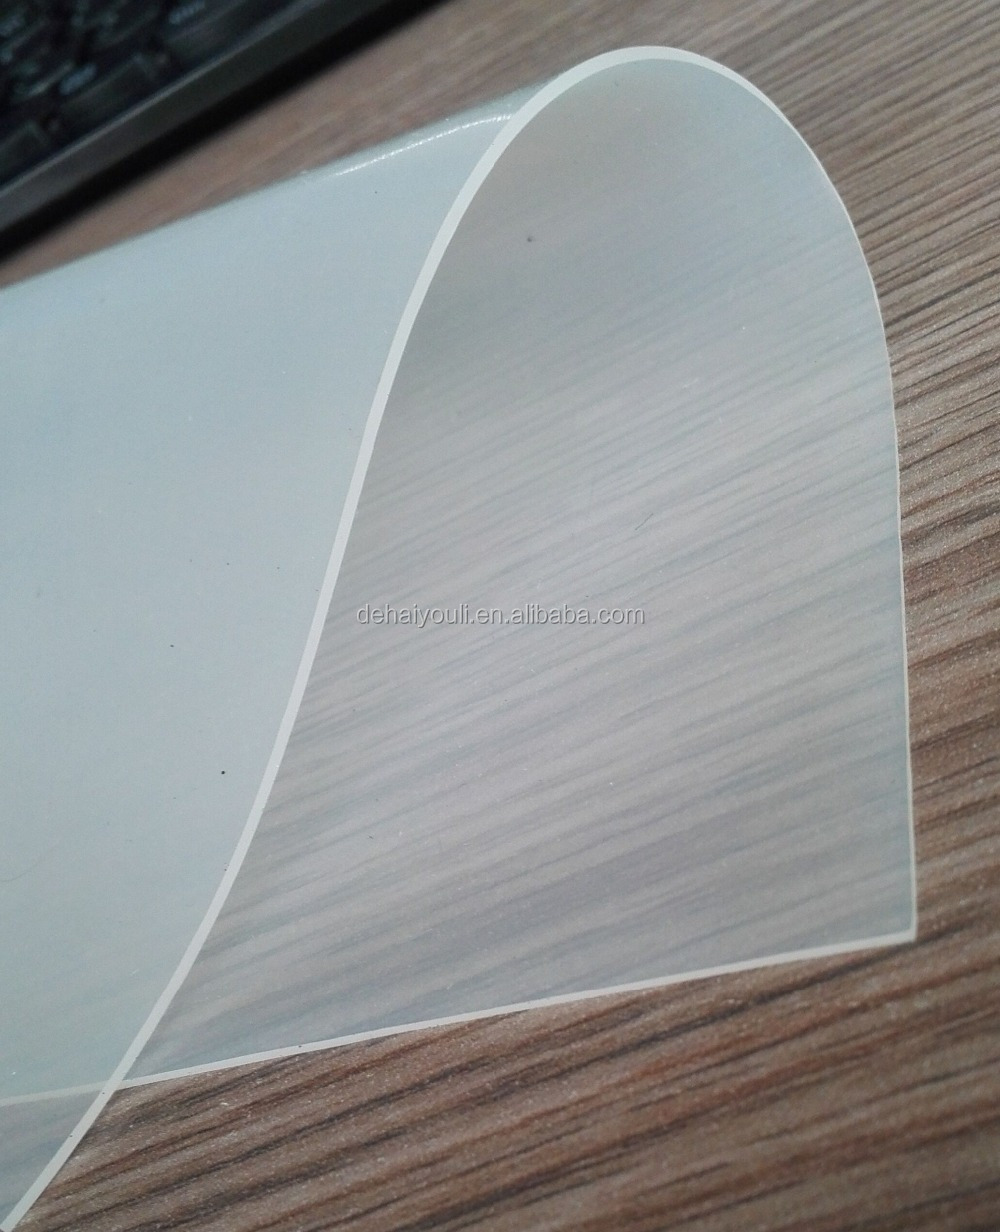 Translucent Silicone Rubber Sheet / Transparent Silicone Membrane SRS